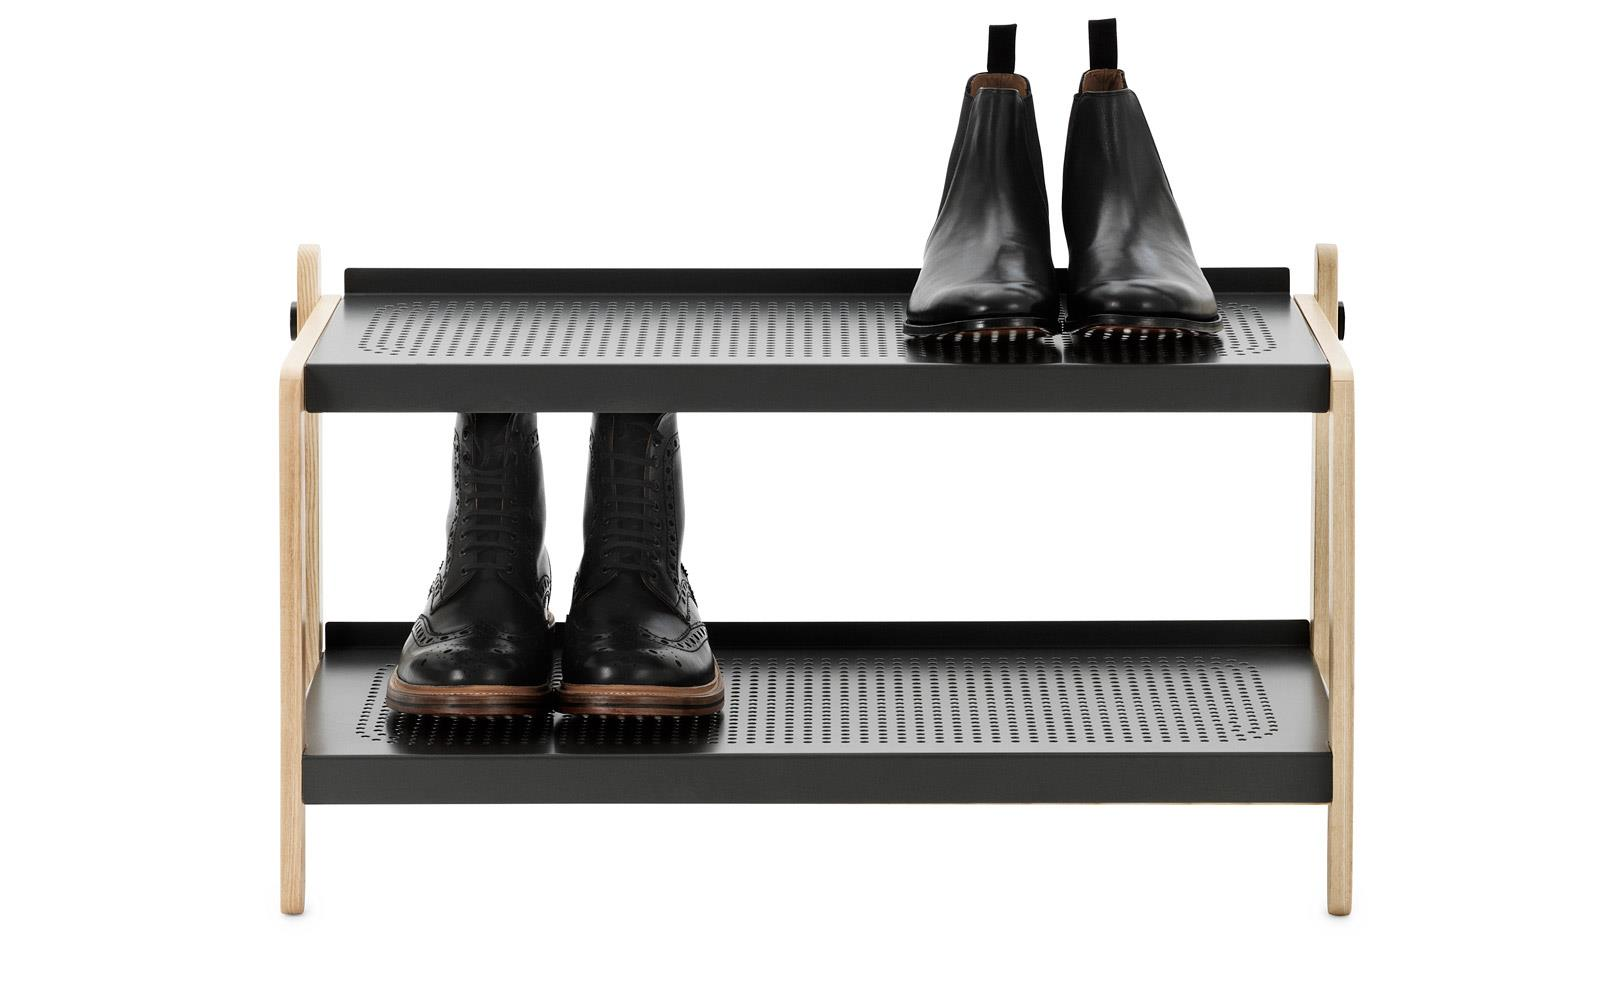 Sko Shoe Rack4